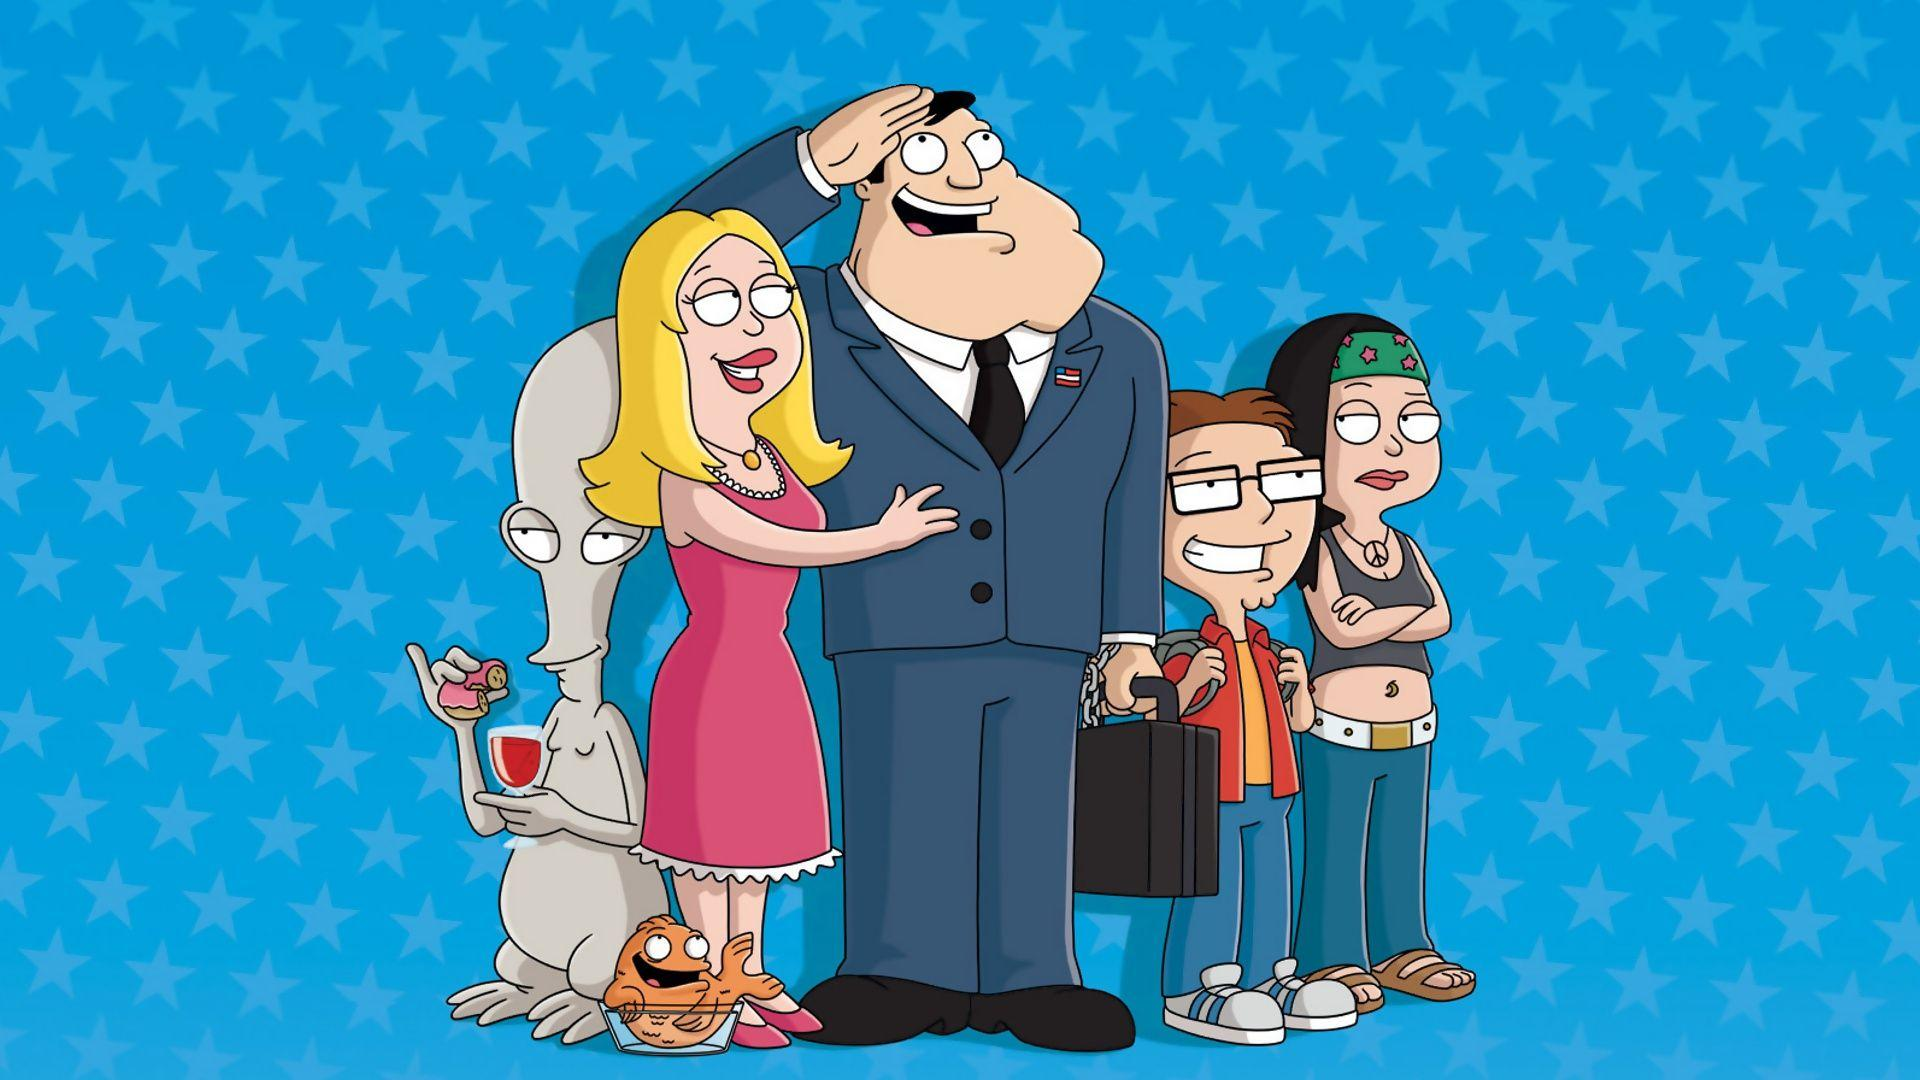 American Dad Blue Wallpaper 39940 in Movies - Telusers.